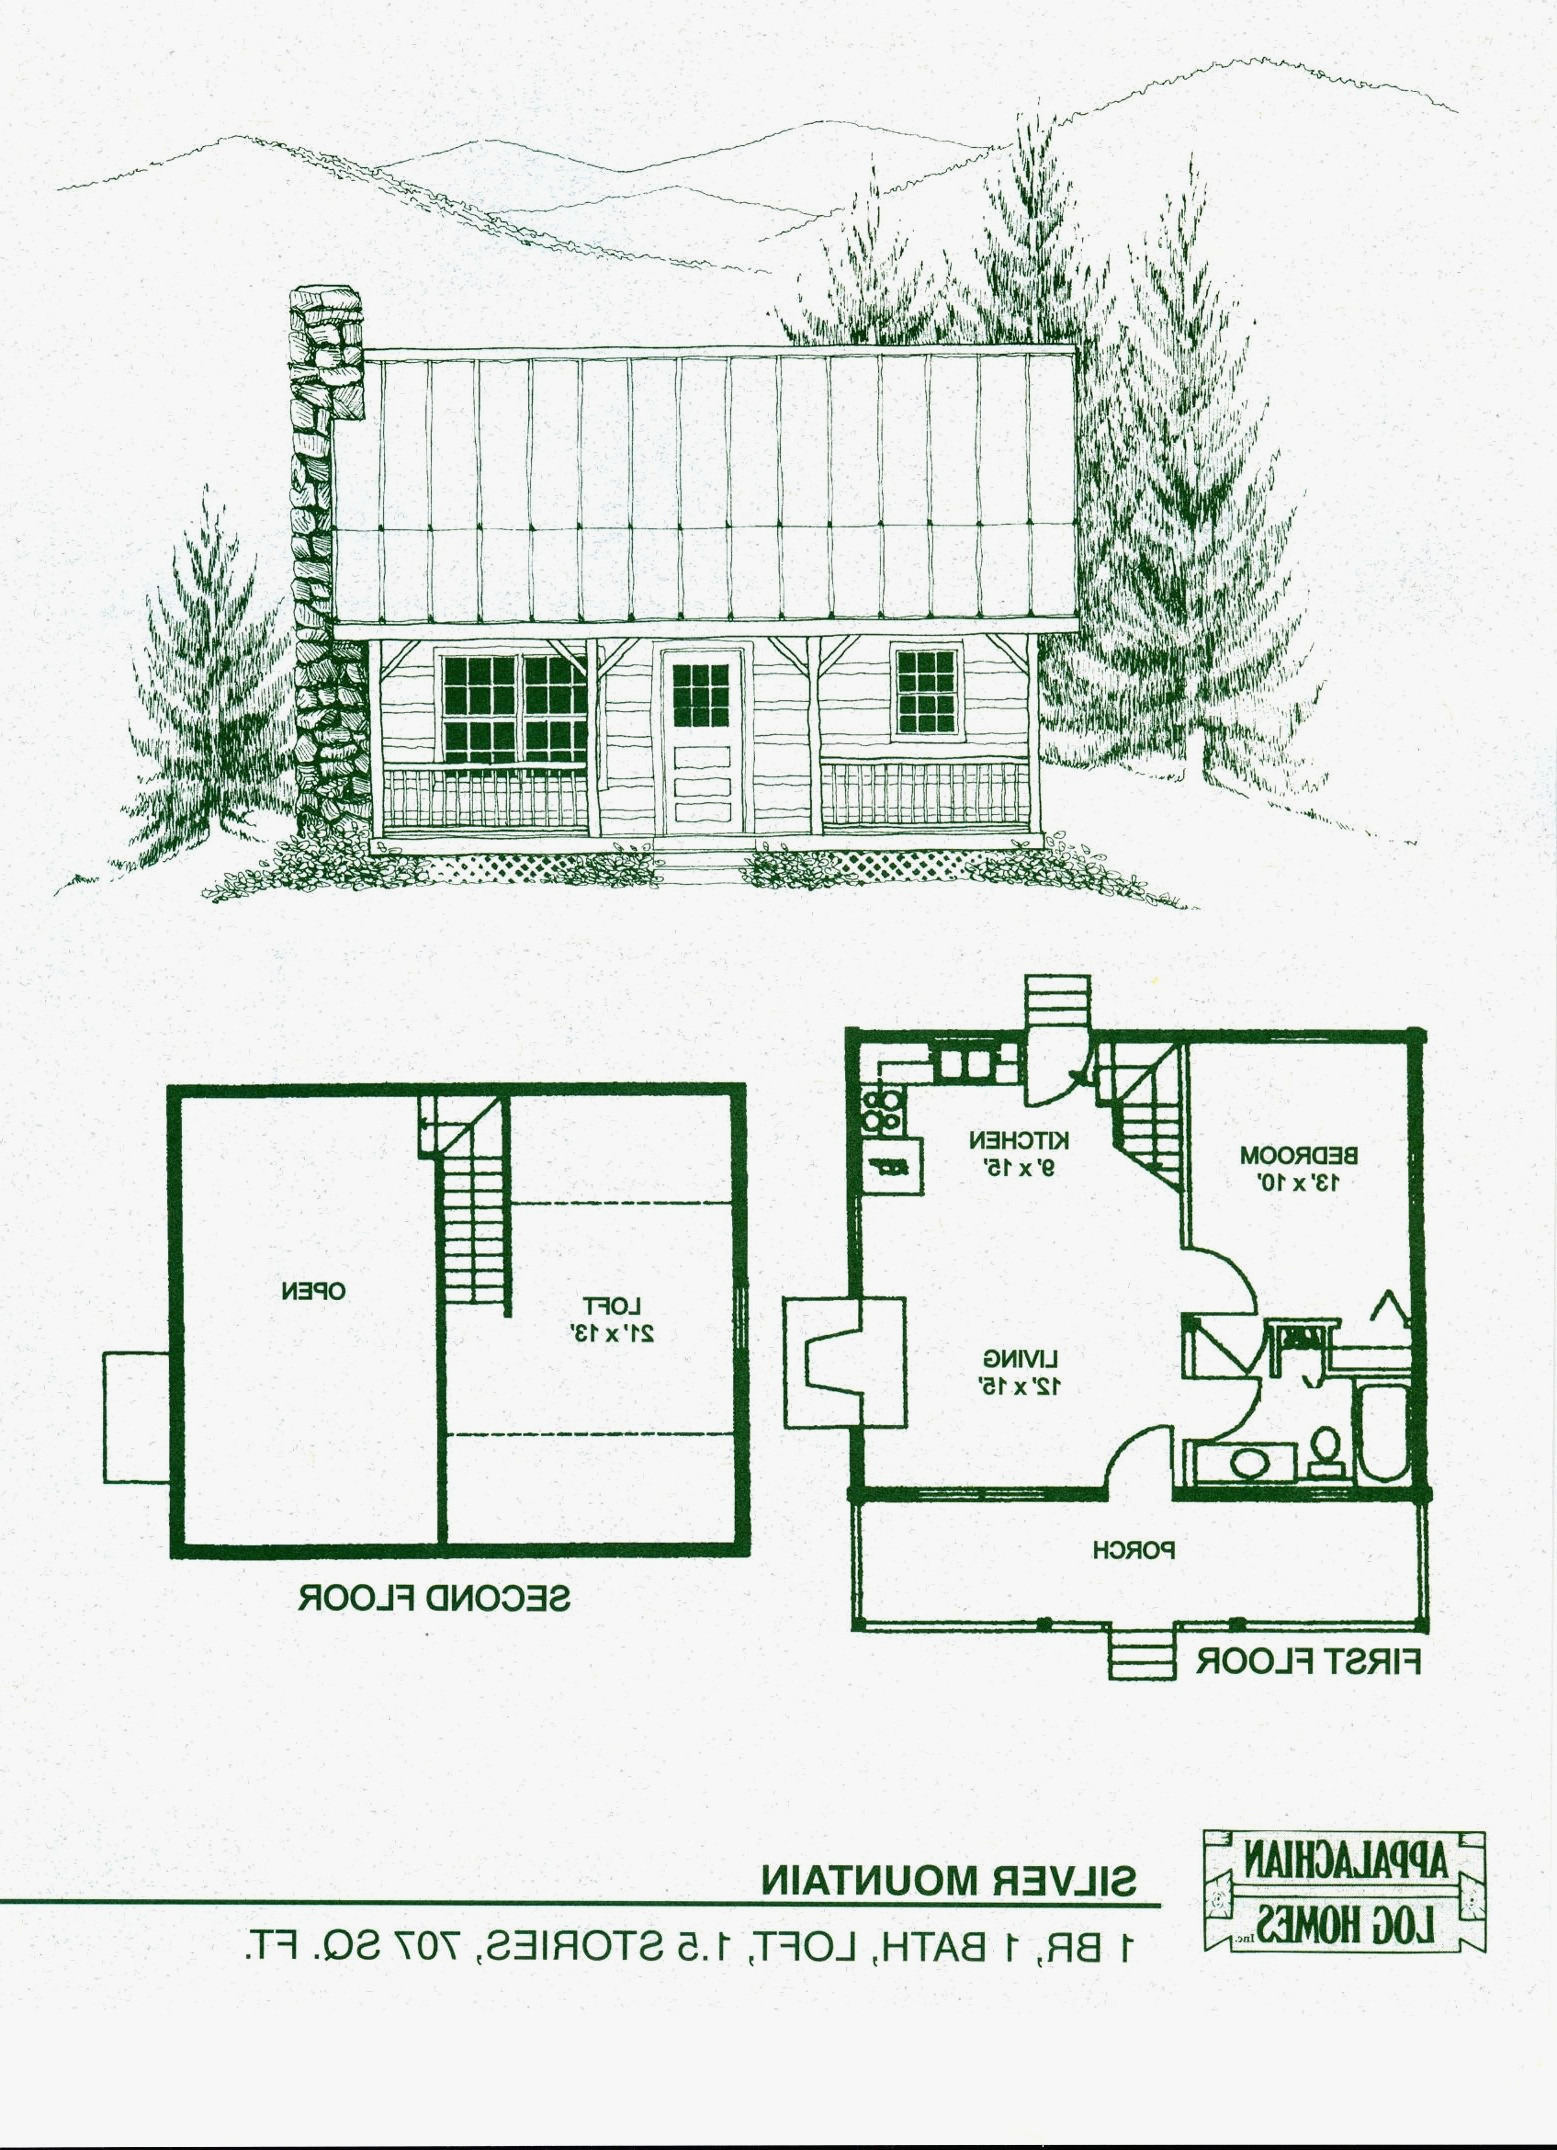 House Plans Cabin Style Luxury 59 New Small Cabins with Loft Floor Plans Stock – Daftar